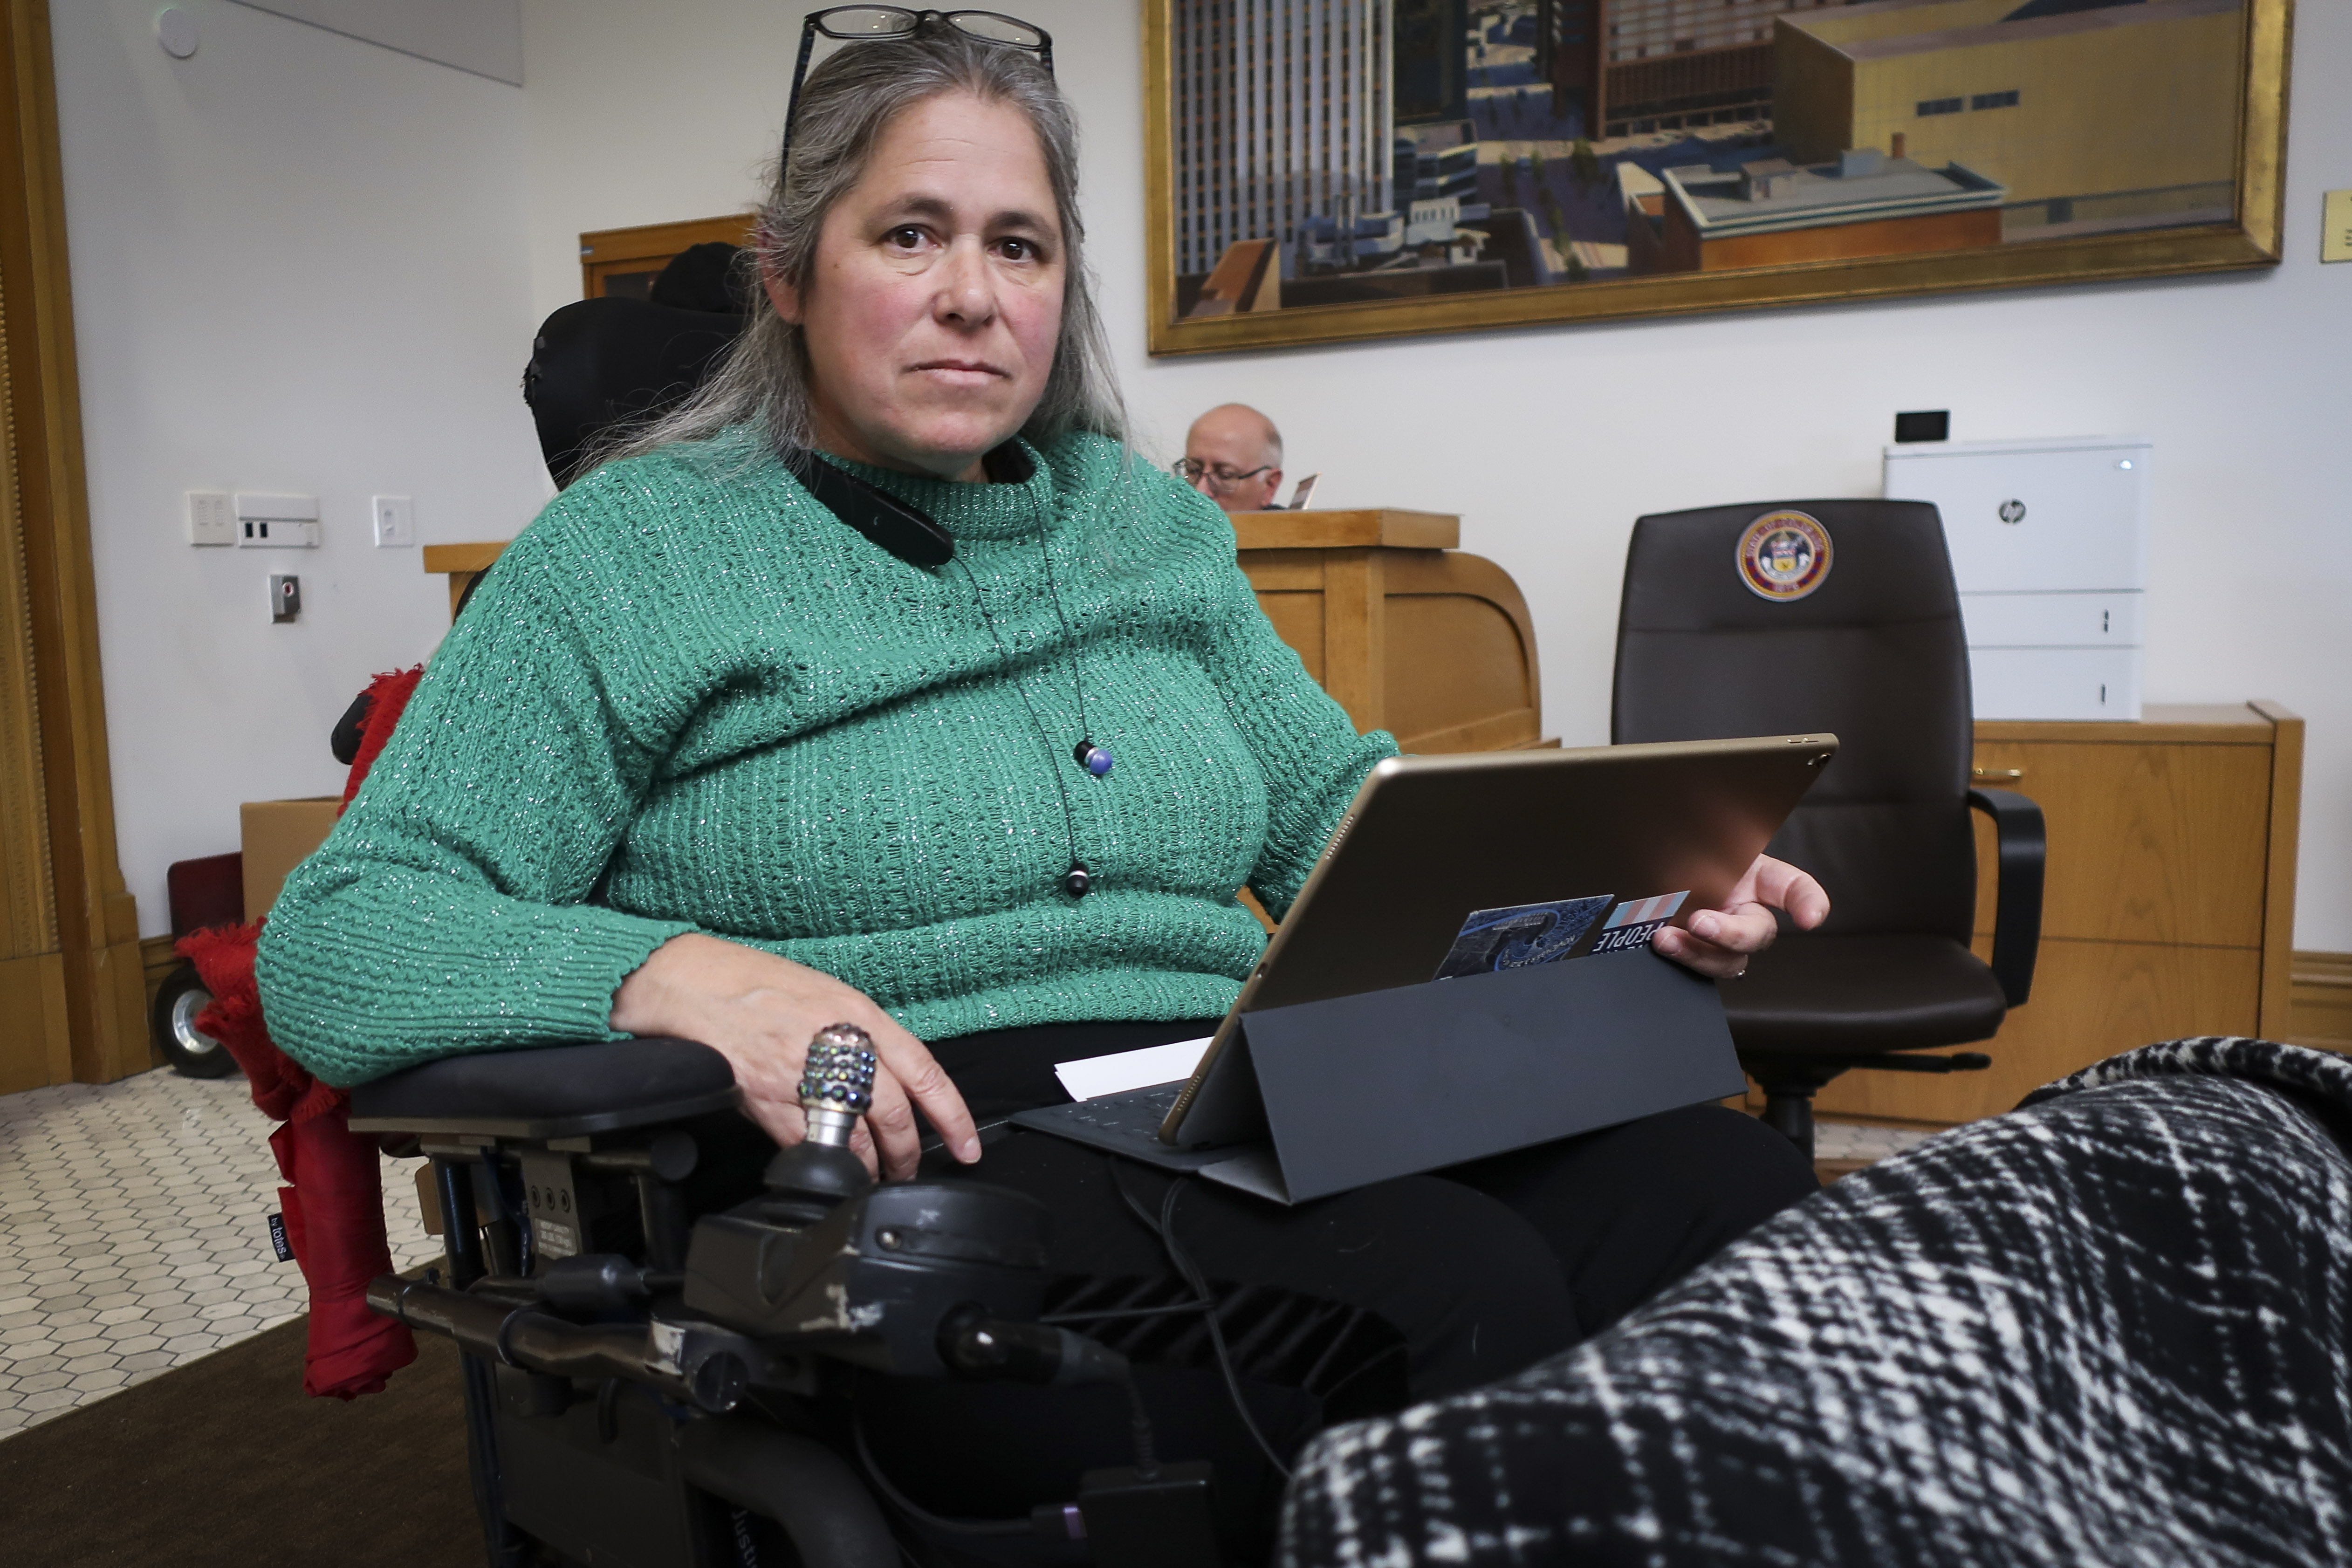 Julie Reiskin is executive director of the Colorado Cross-Disability Coalition.